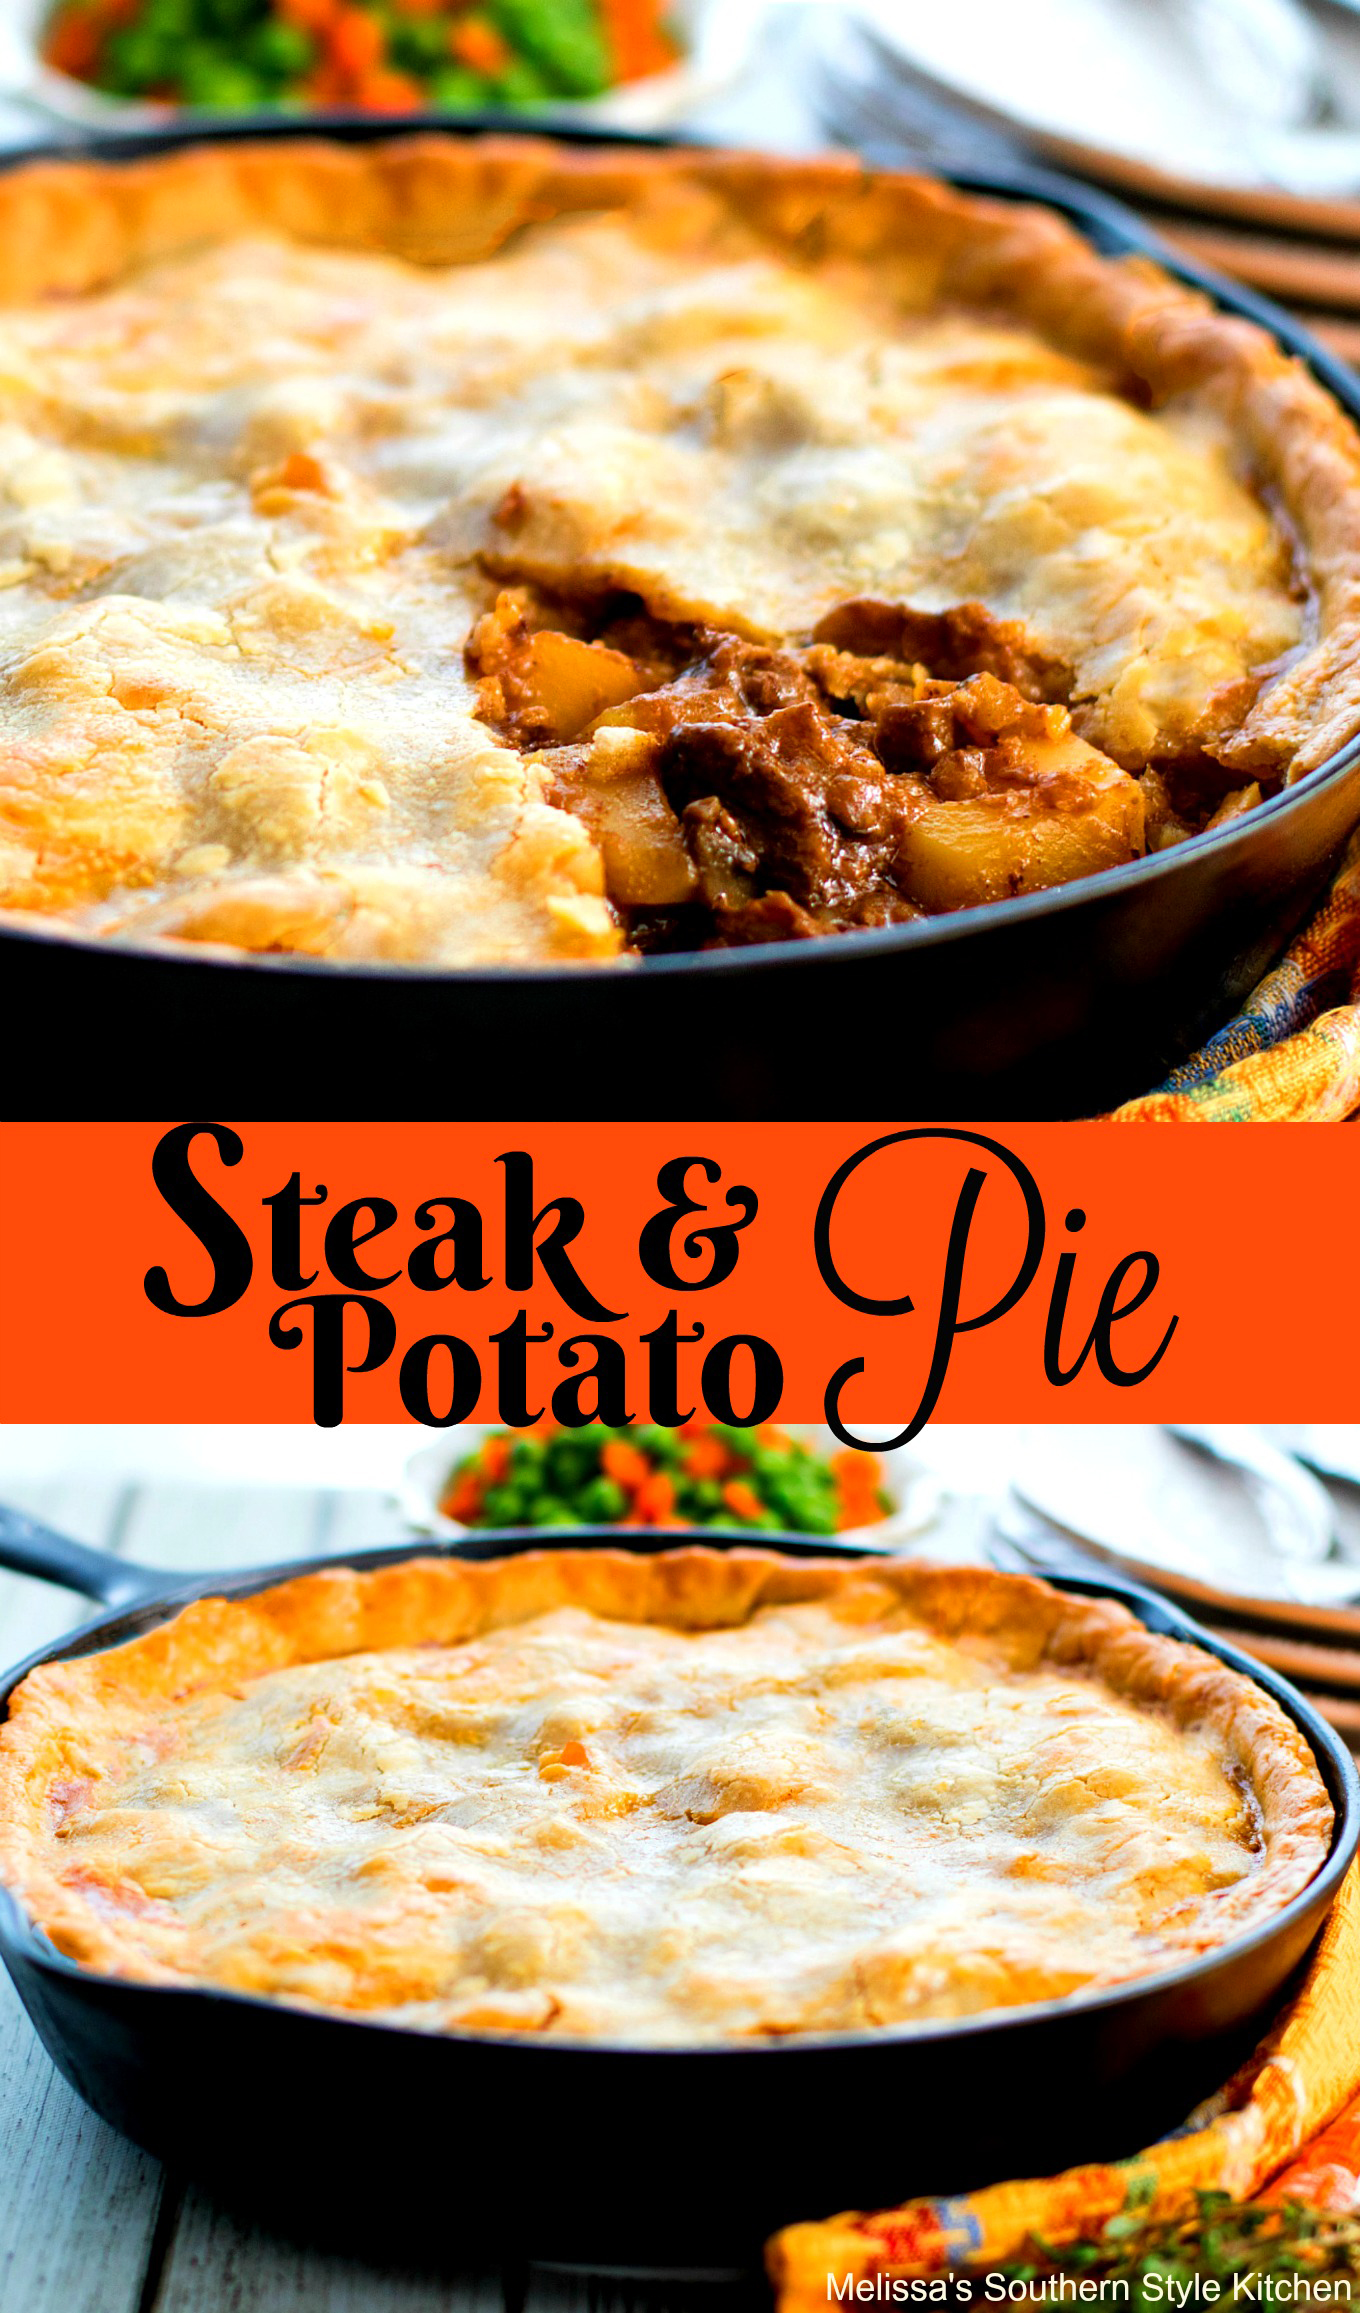 Steak and Potato Pie - melissassouthernstylekitchen.com